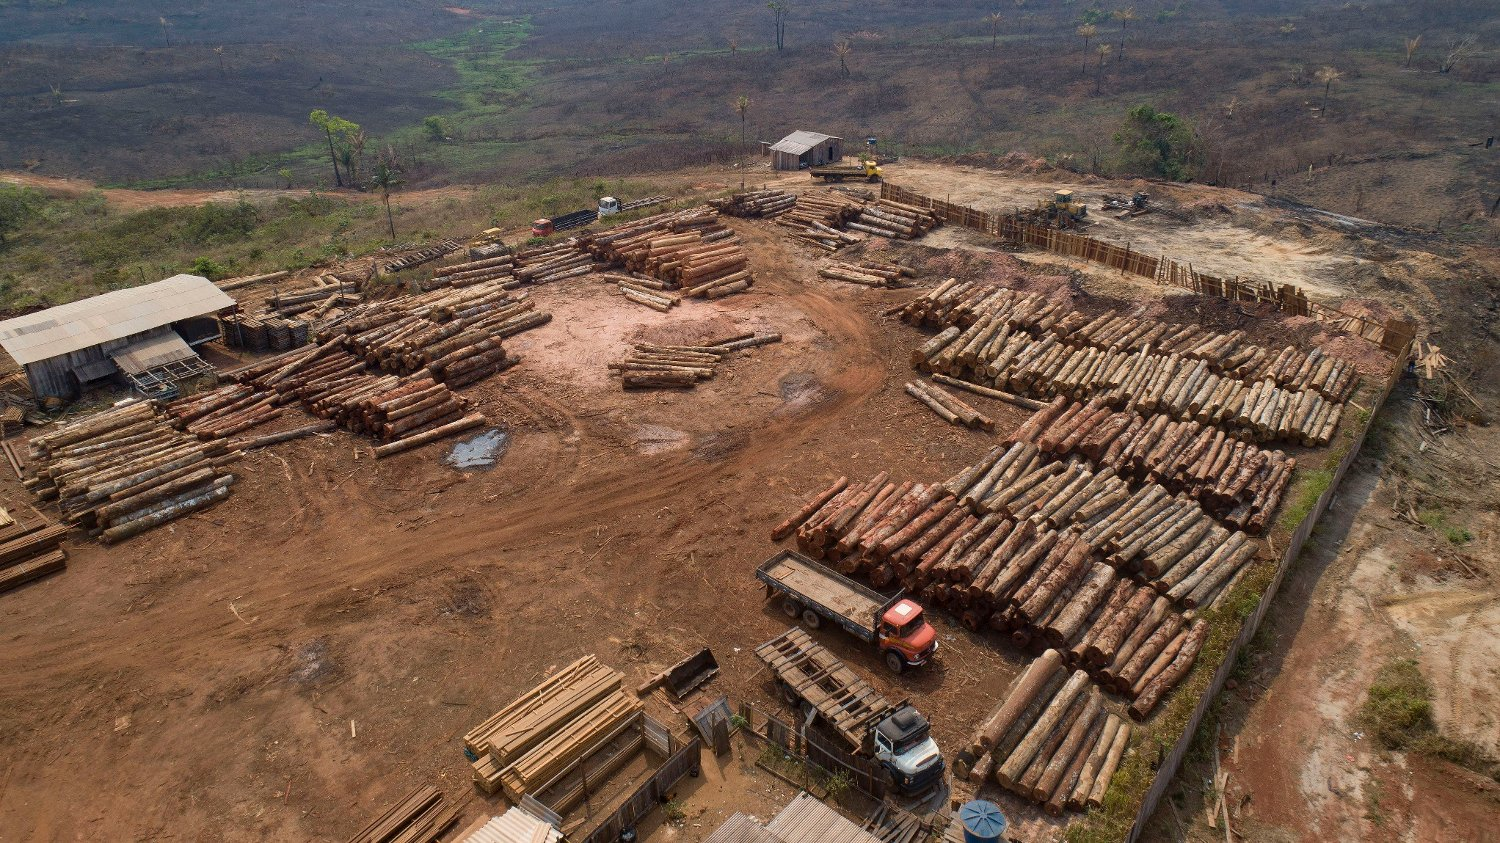 Brazil Amazon Deforestation FILE - In this Sept. 2, 2019 file photo, logs are stacked at a lumber mill surrounded by recently charred and deforested fields near Porto Velho, Rondonia state, Brazil. Dozens of Brazilian corporations are calling for a crackdown on illegal logging in the Amazon rainforest, expressing their concerns in a letter Tuesday, July 7, 2020, to the vice president, who heads the government's council on that region.